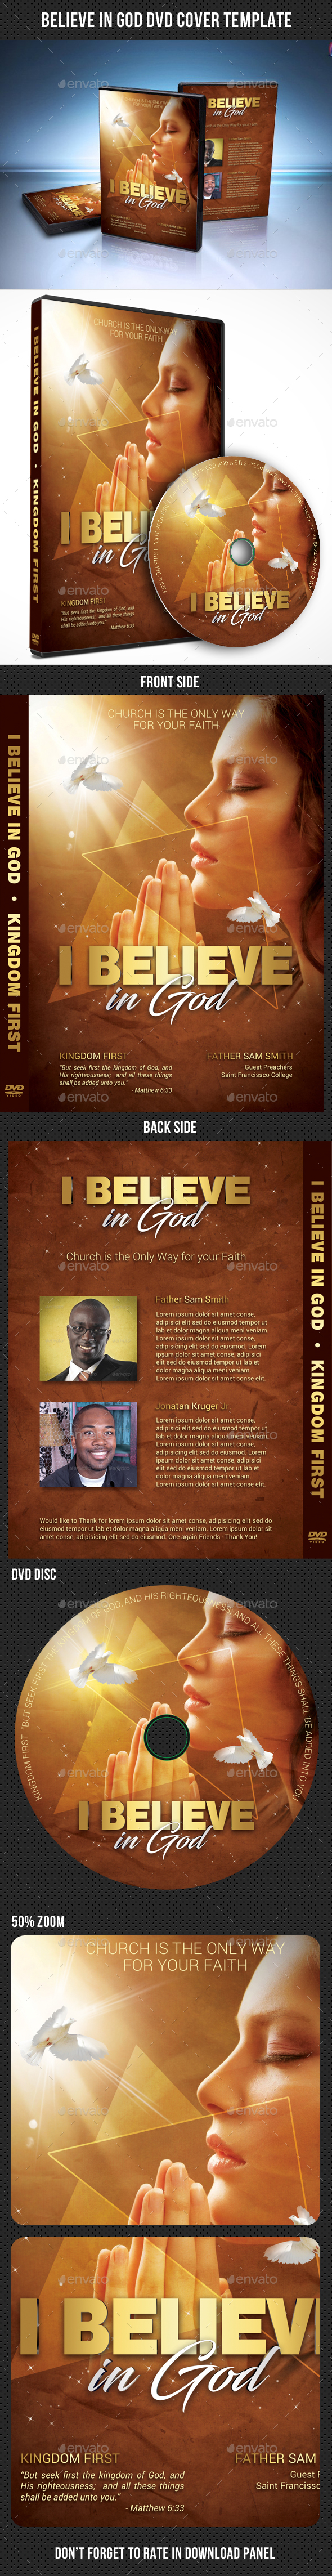 Believe In God DVD Cover Template - CD & DVD Artwork Print Templates